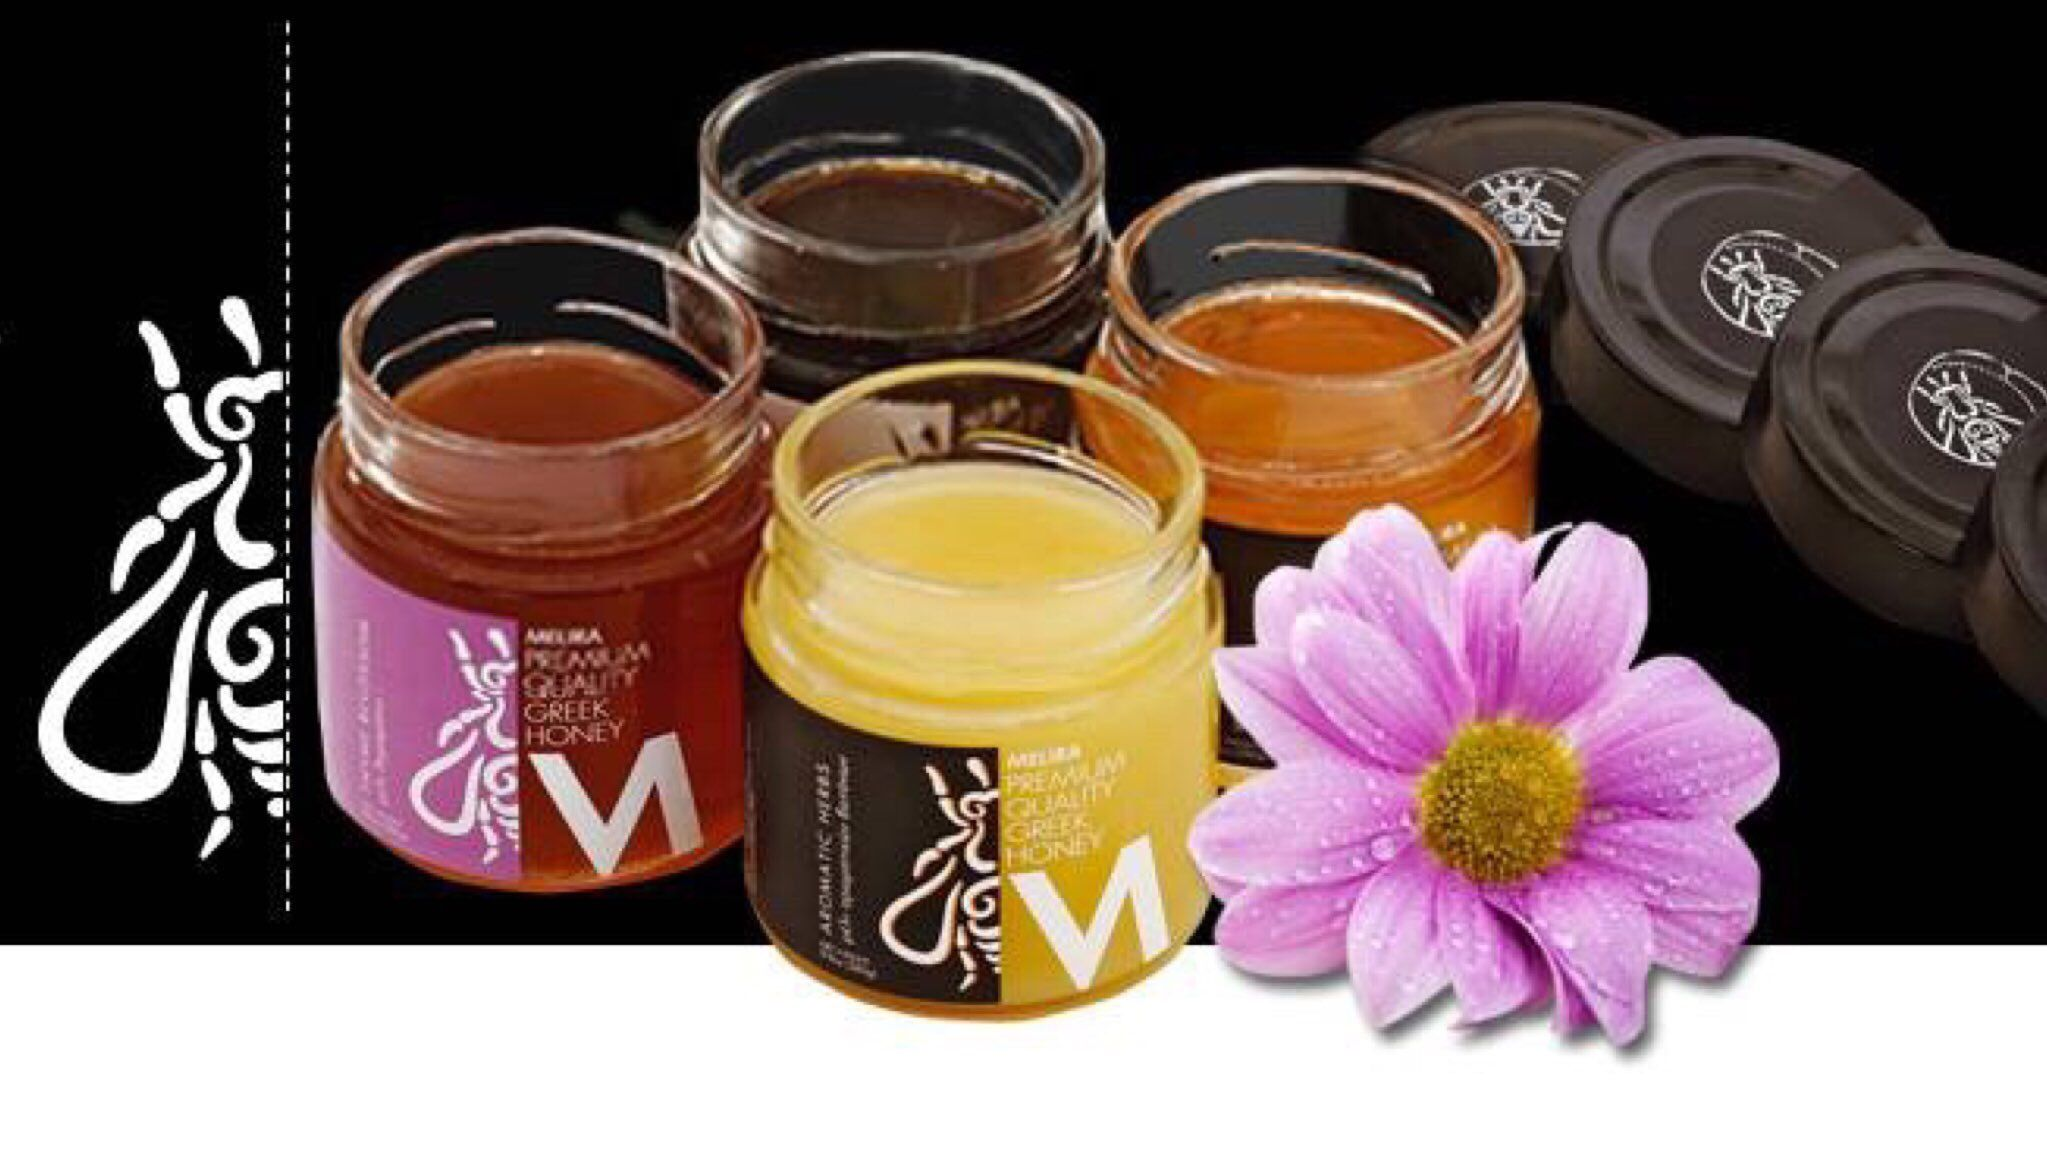 The delicious Greek Honey Melira is imported and